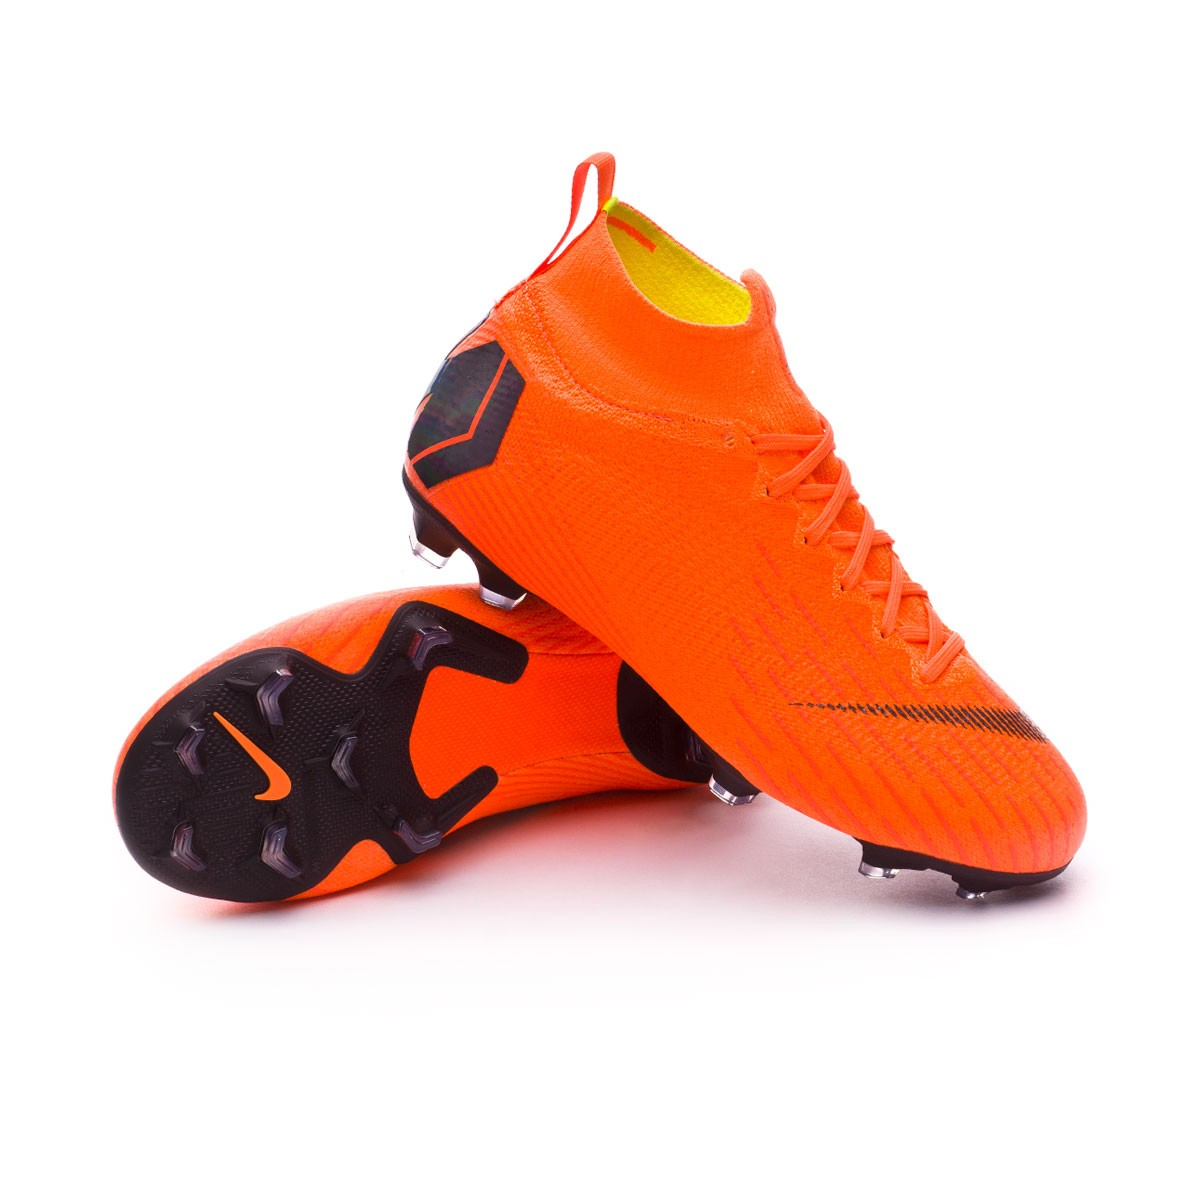 31b322d0531 Football Boots Nike Kids Mercurial Superfly VI Elite FG Total orange ...